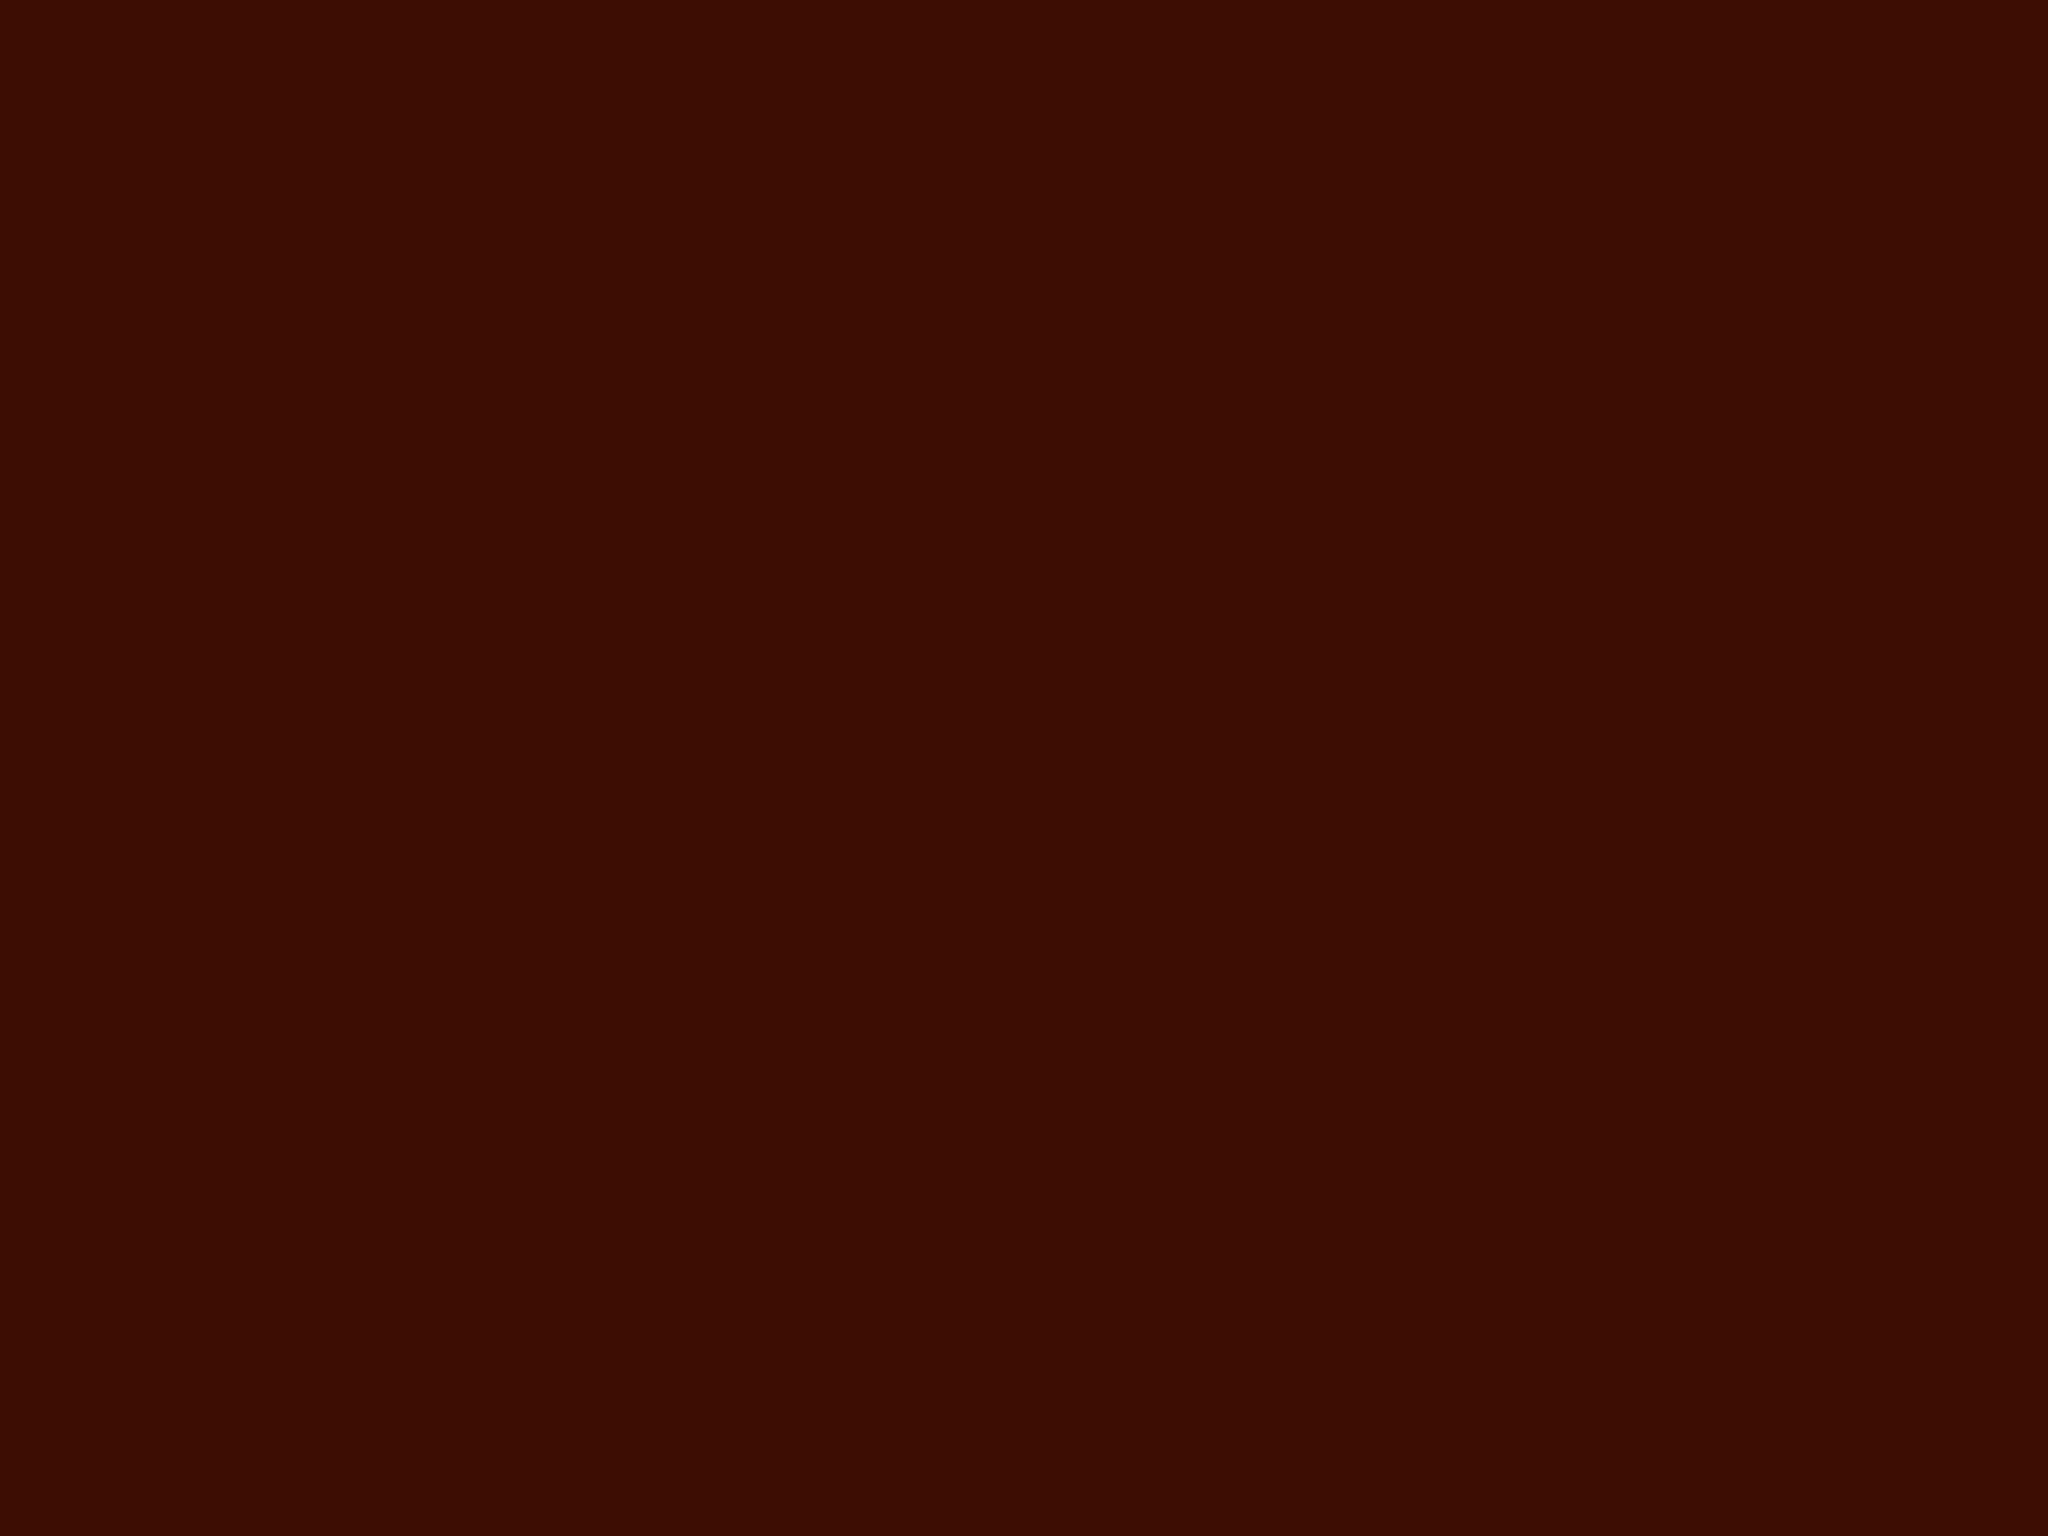 2048x1536 Black Bean Solid Color Background